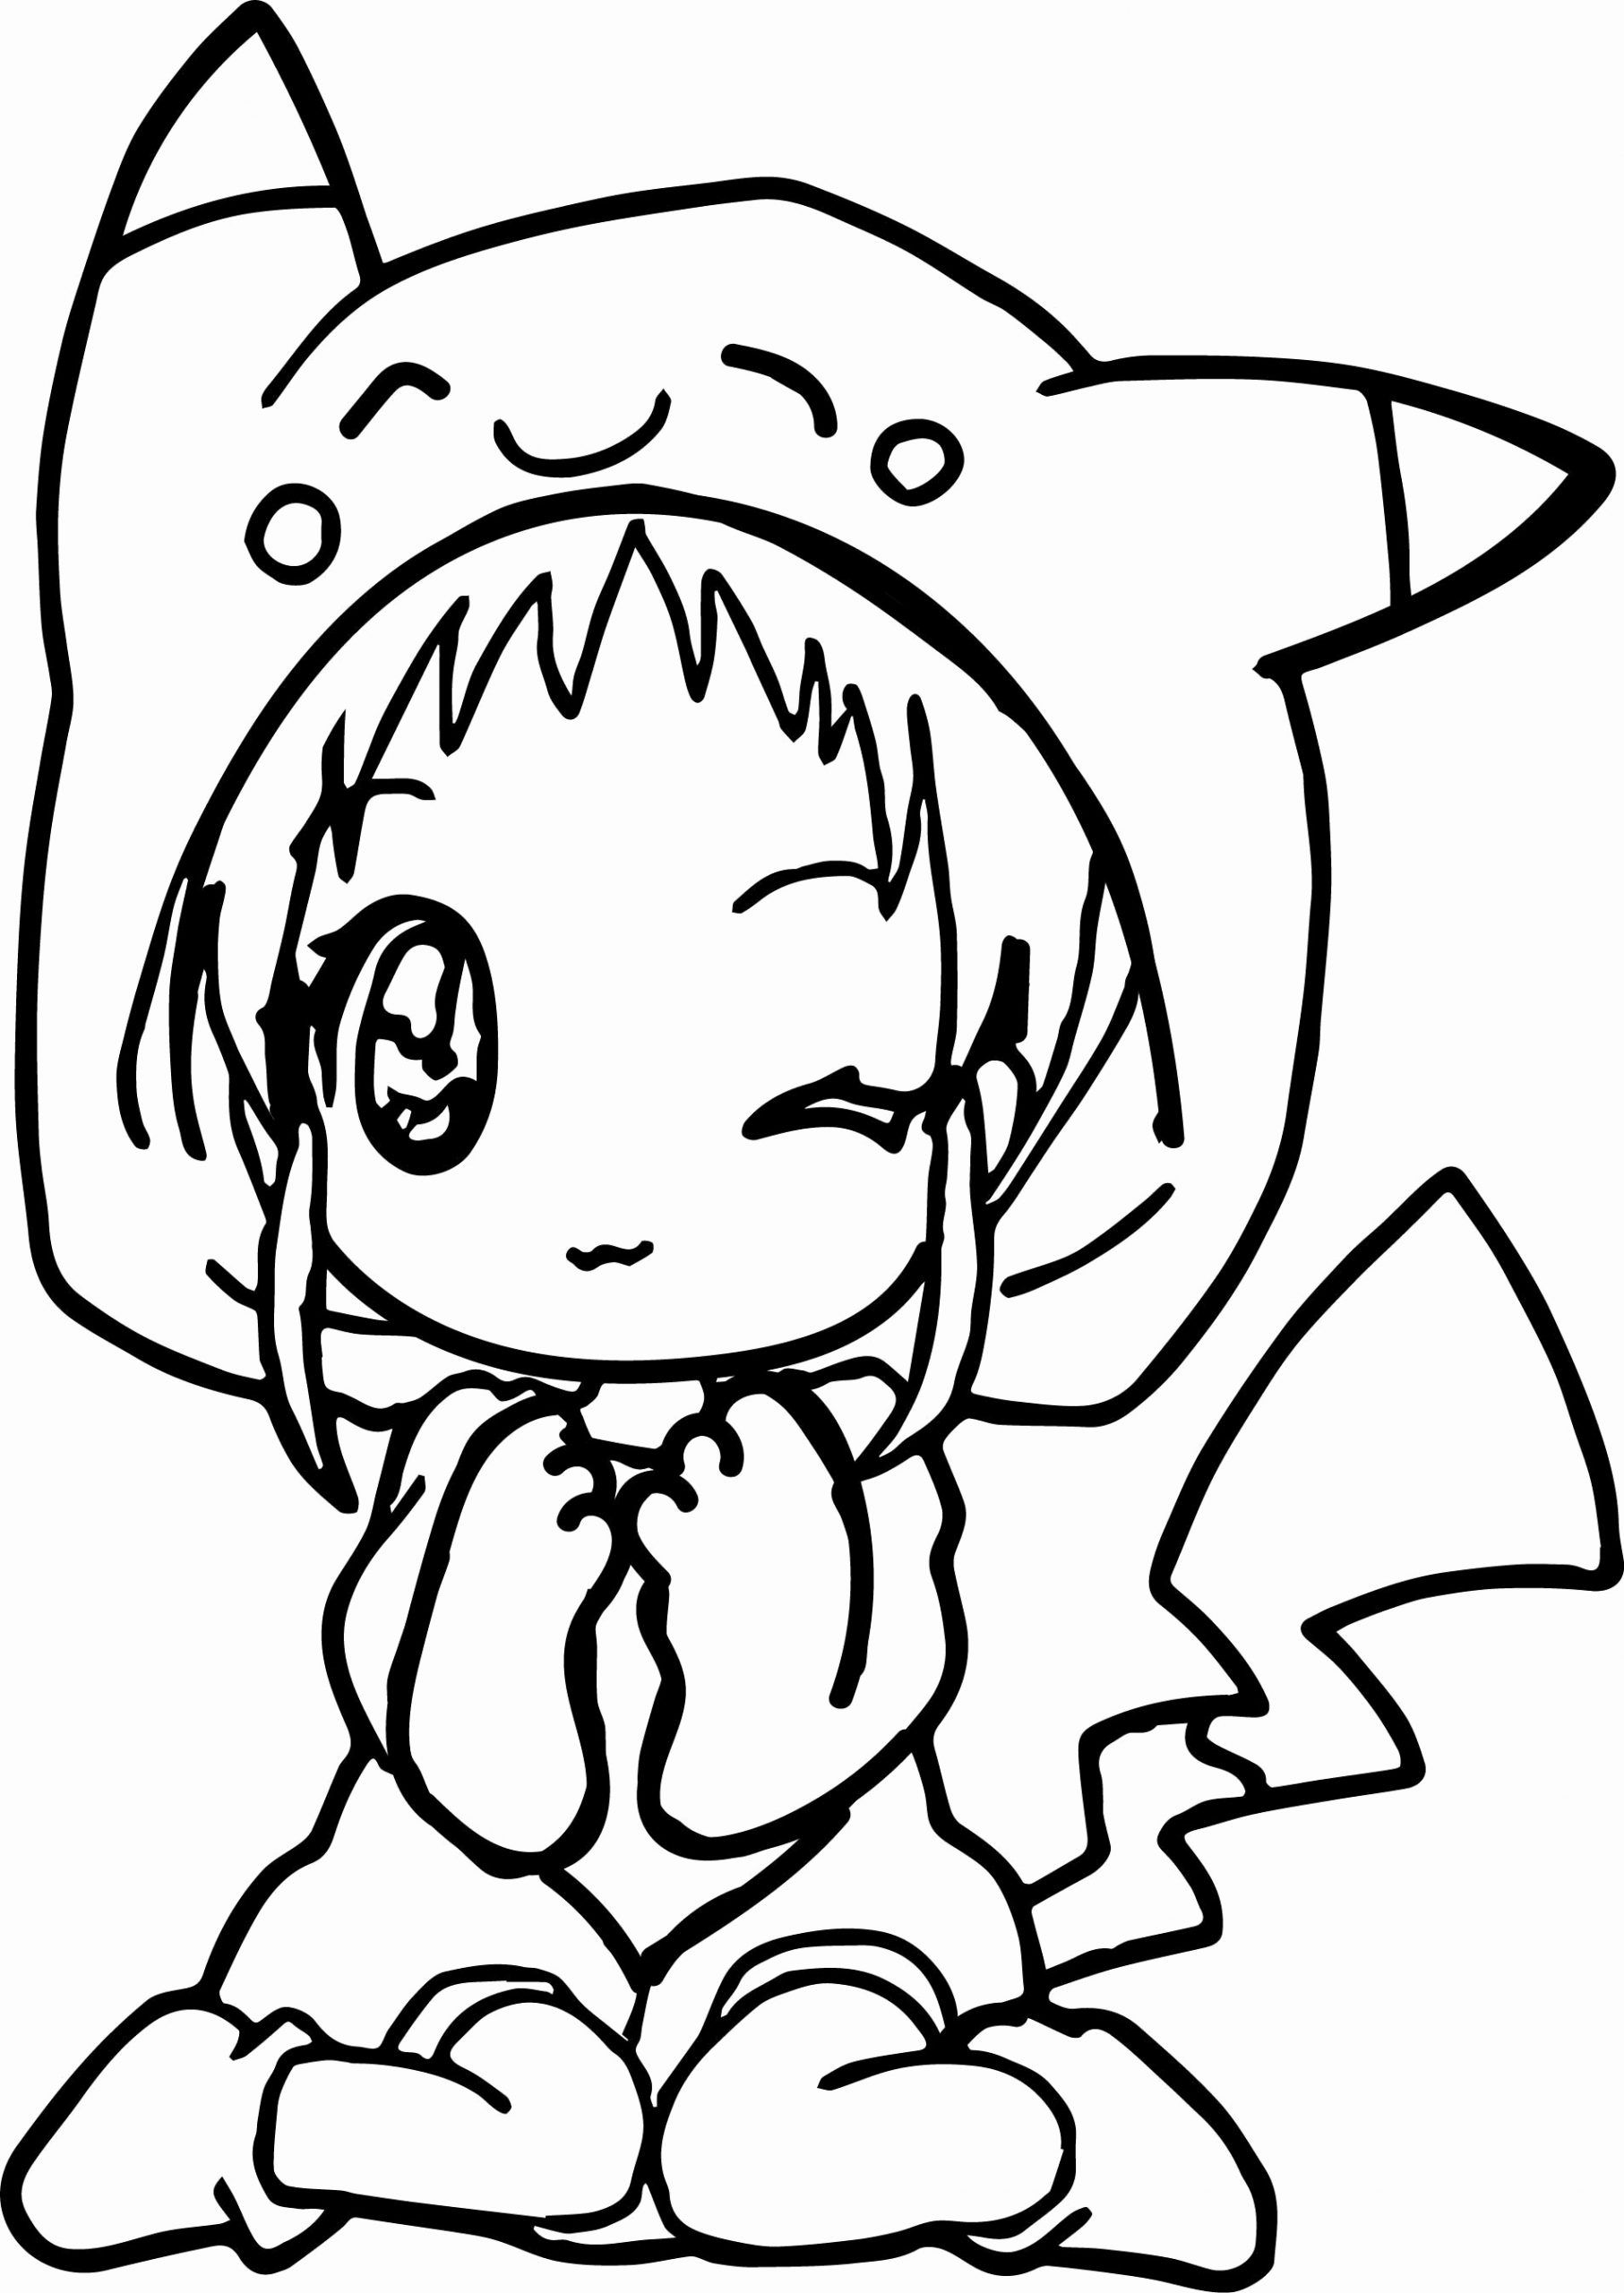 Anime Cat Coloring Pages Unique Manga Animal Coloring Pages Anime Cat Girl Coloring Pages In 2020 Unicorn Coloring Pages Pikachu Coloring Page Cute Coloring Pages